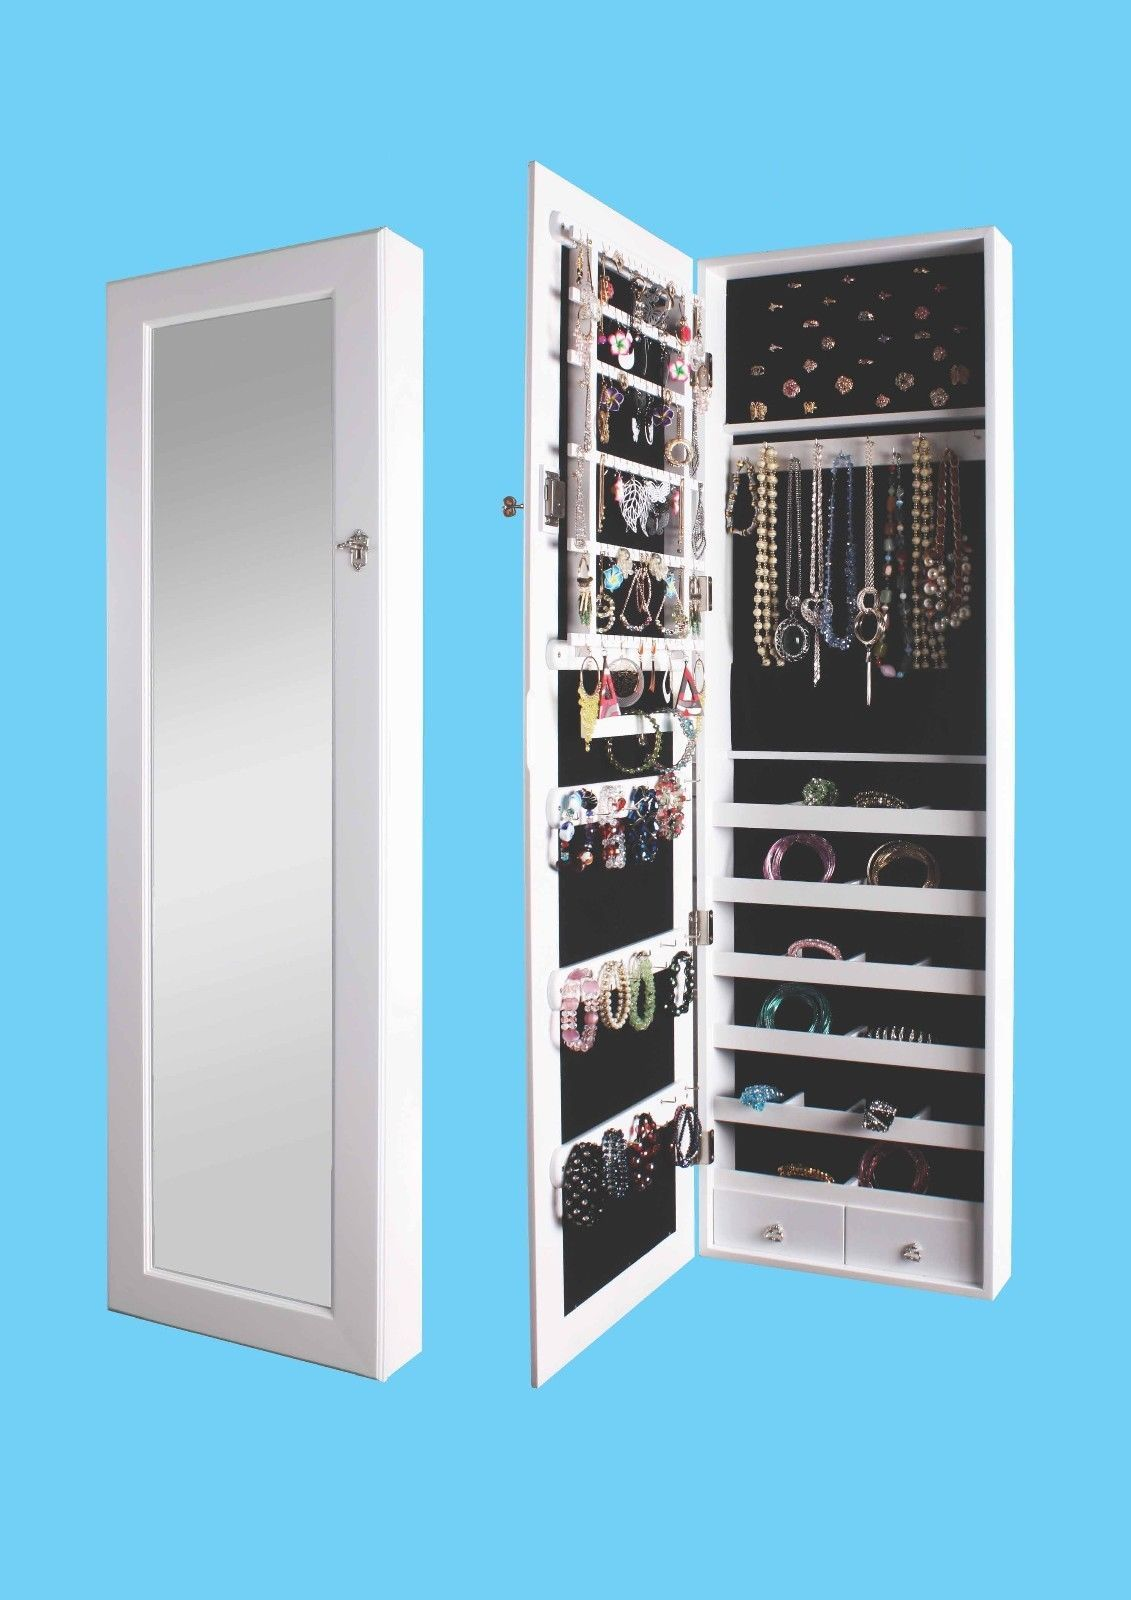 Mirrored Jewelry Armoire Cabinet Storage Wall Mount Hang over the